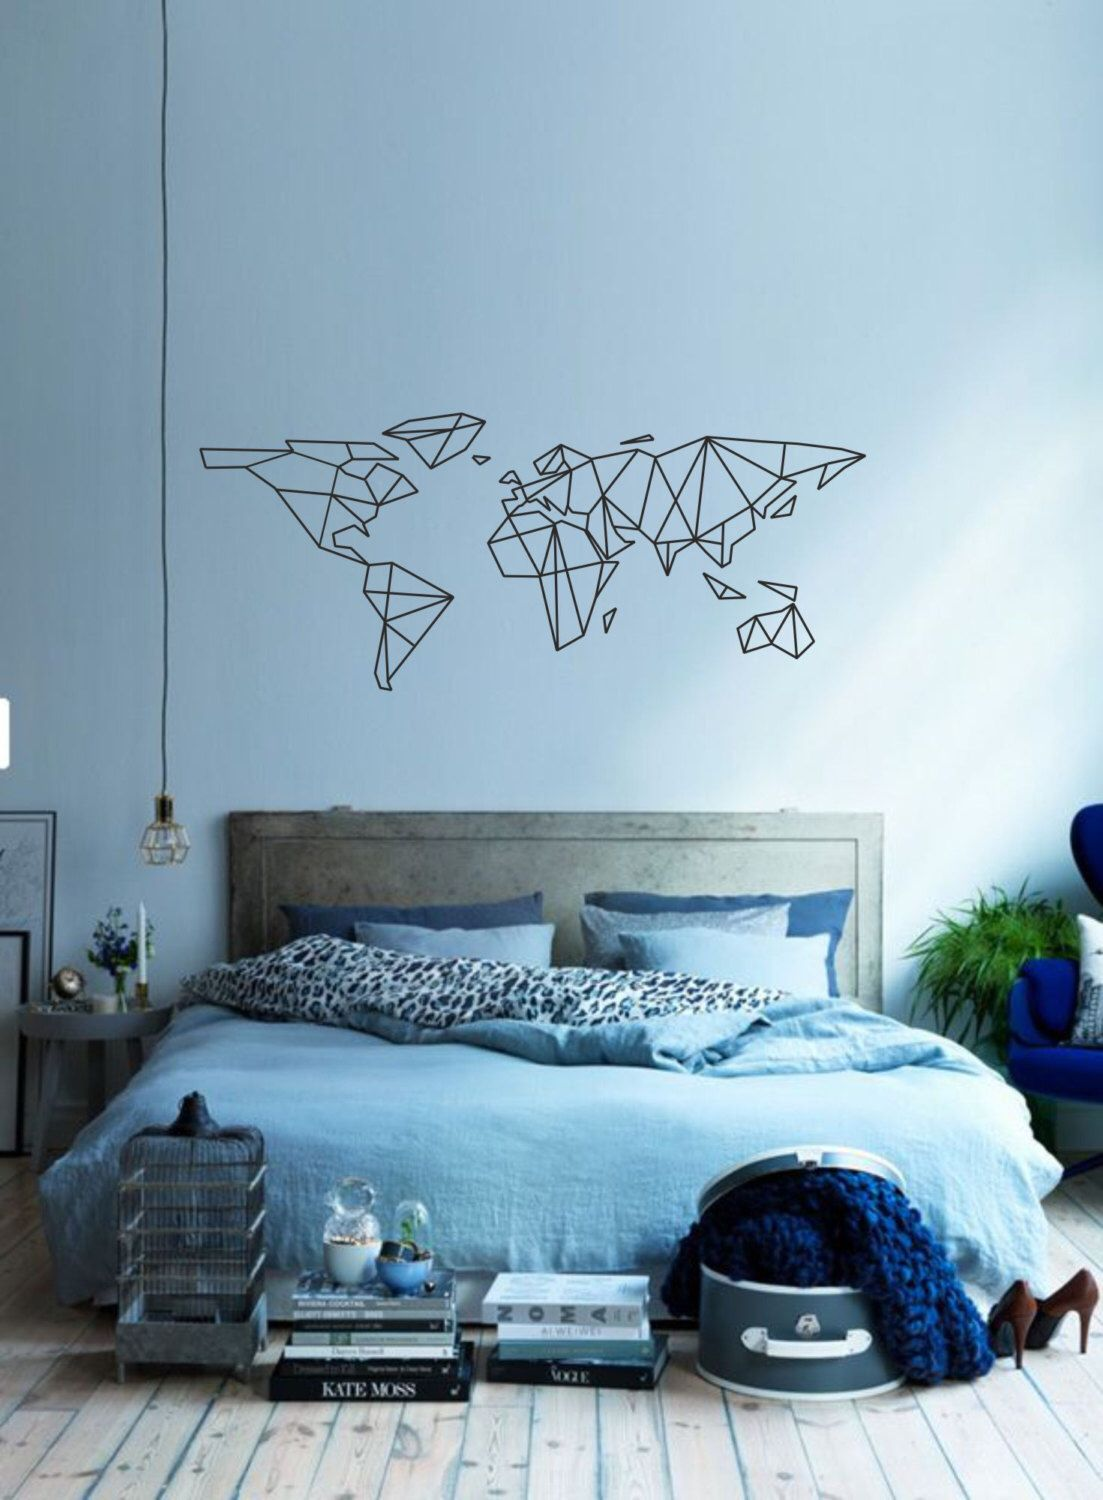 Science art geometric world map vinyl wall decal sticker science art geometric world map vinyl wall decal sticker removable vinyl wall decor for office classroom playroom minimal decor gumiabroncs Images